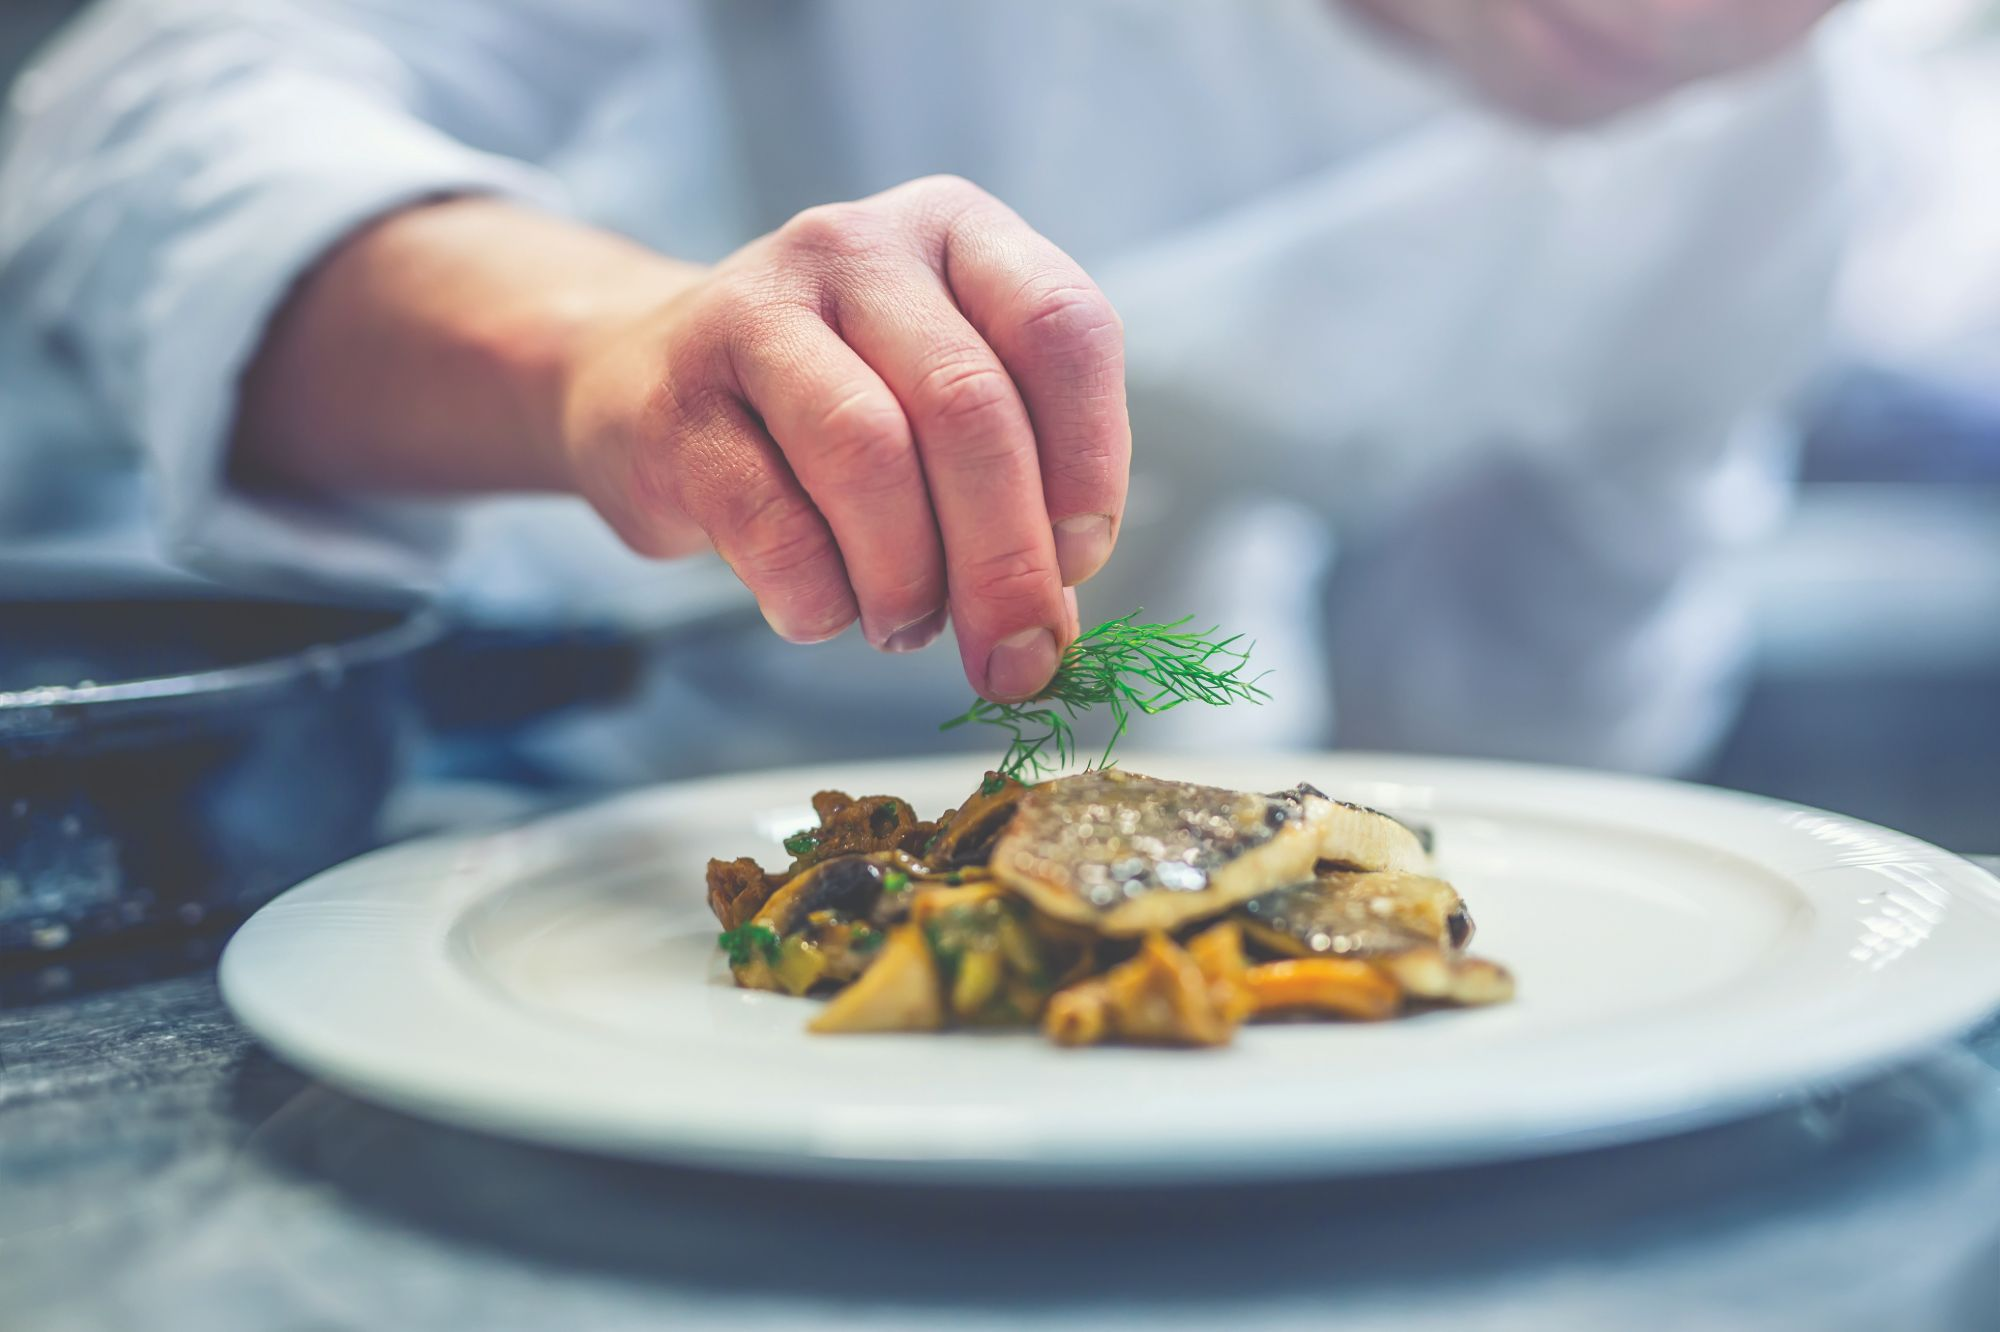 Chef garnishing gourmet meal in dining room at Charter Senior Living of Oak Openings